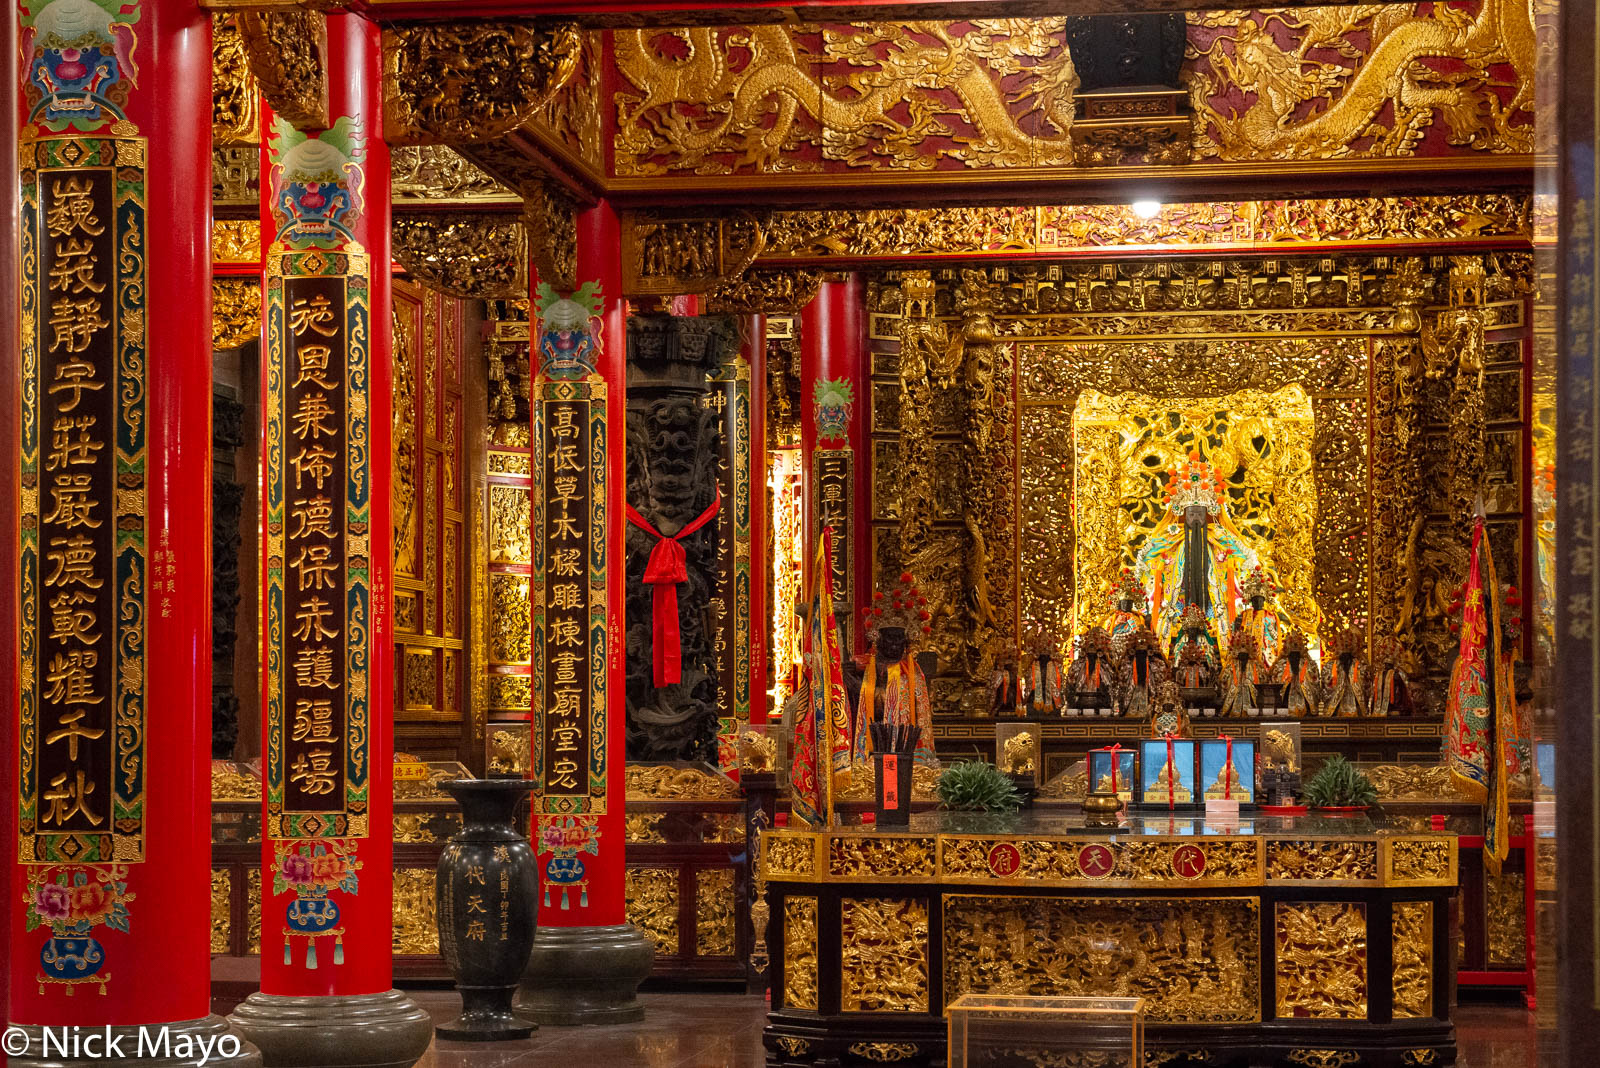 The shrine in the richly decorated Shizhou temple at Nanzhou in Pingtung County.